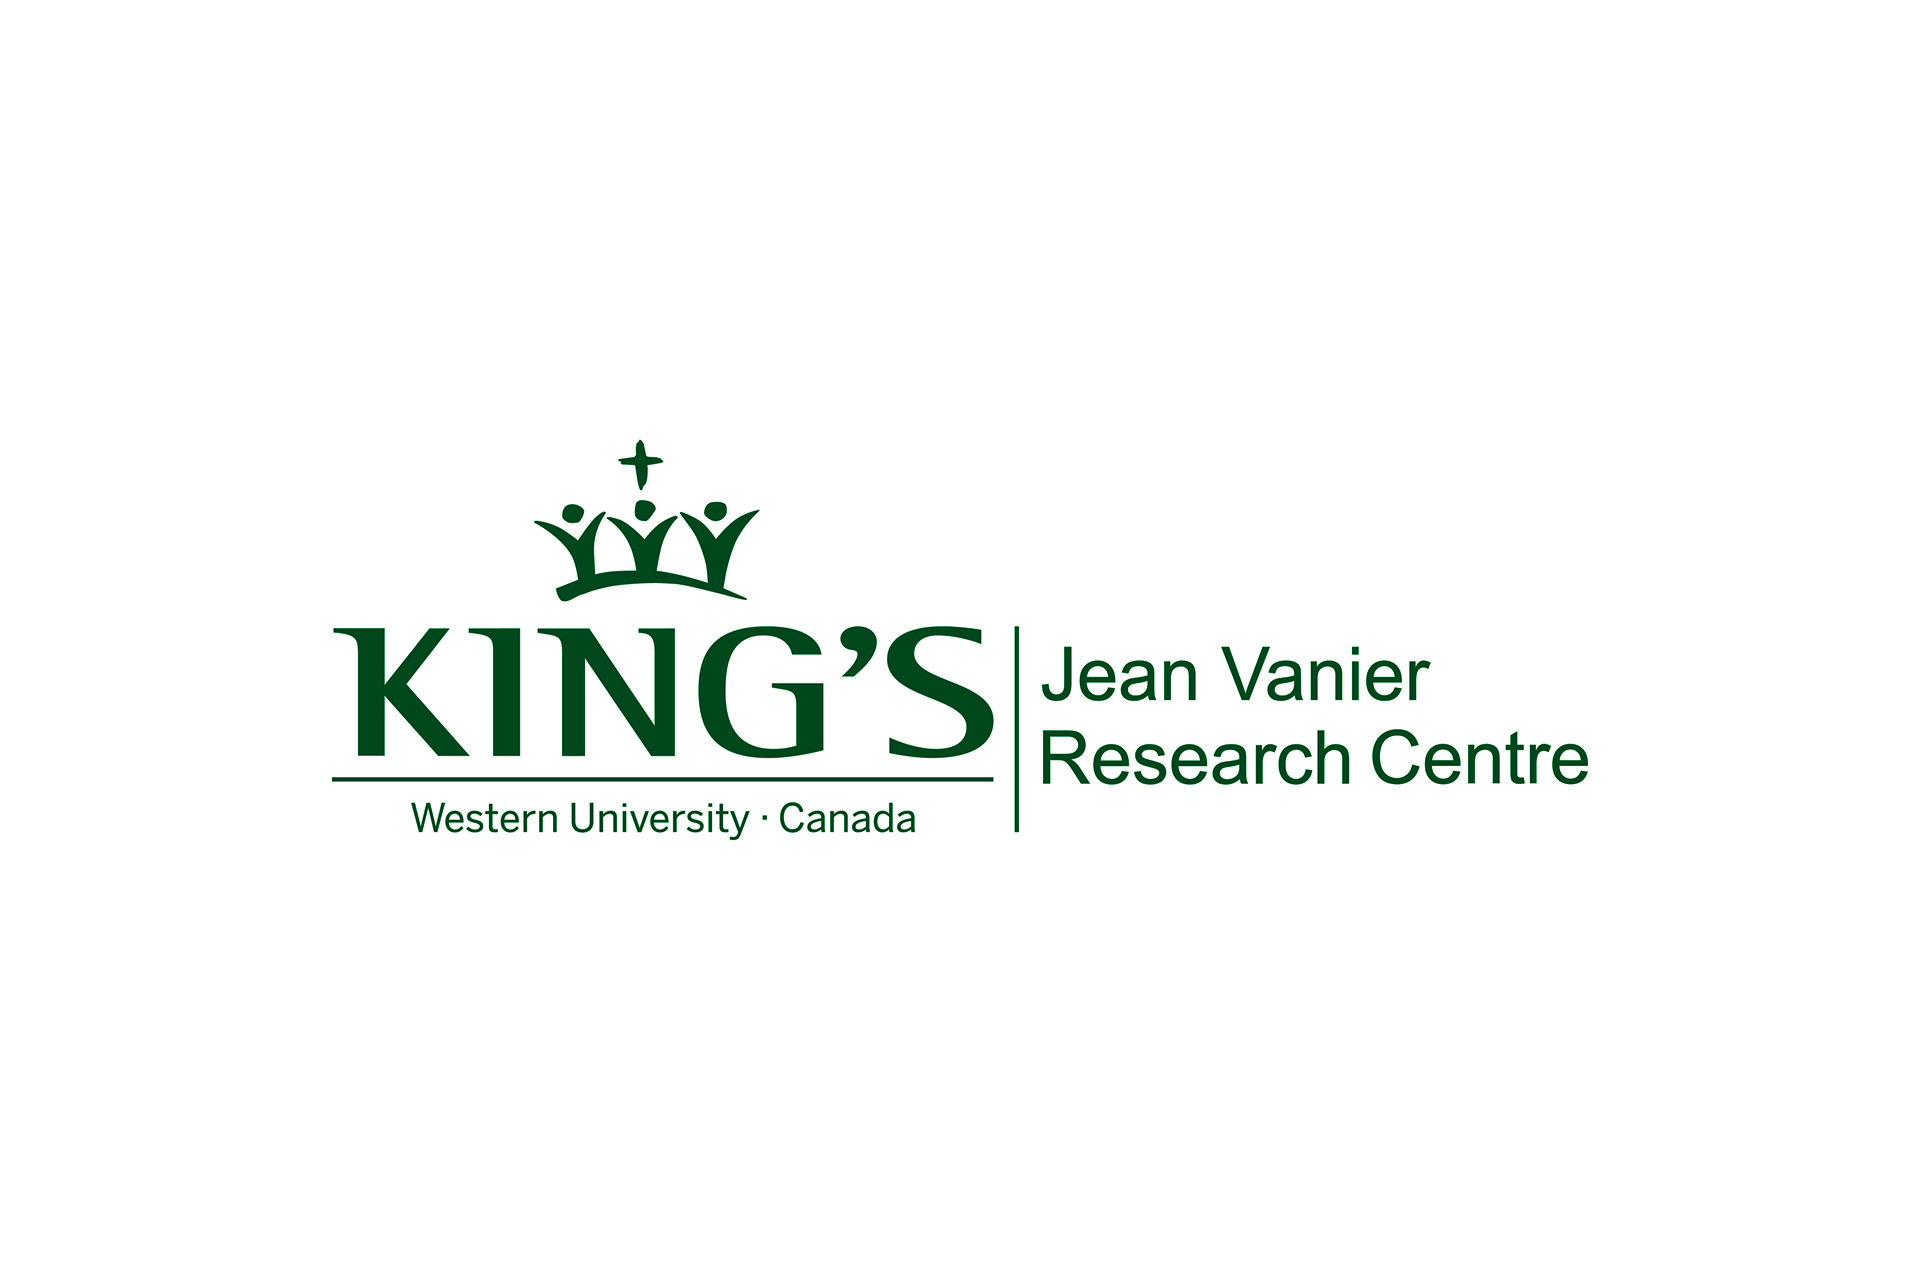 Jean Vanier Research Centre at King's